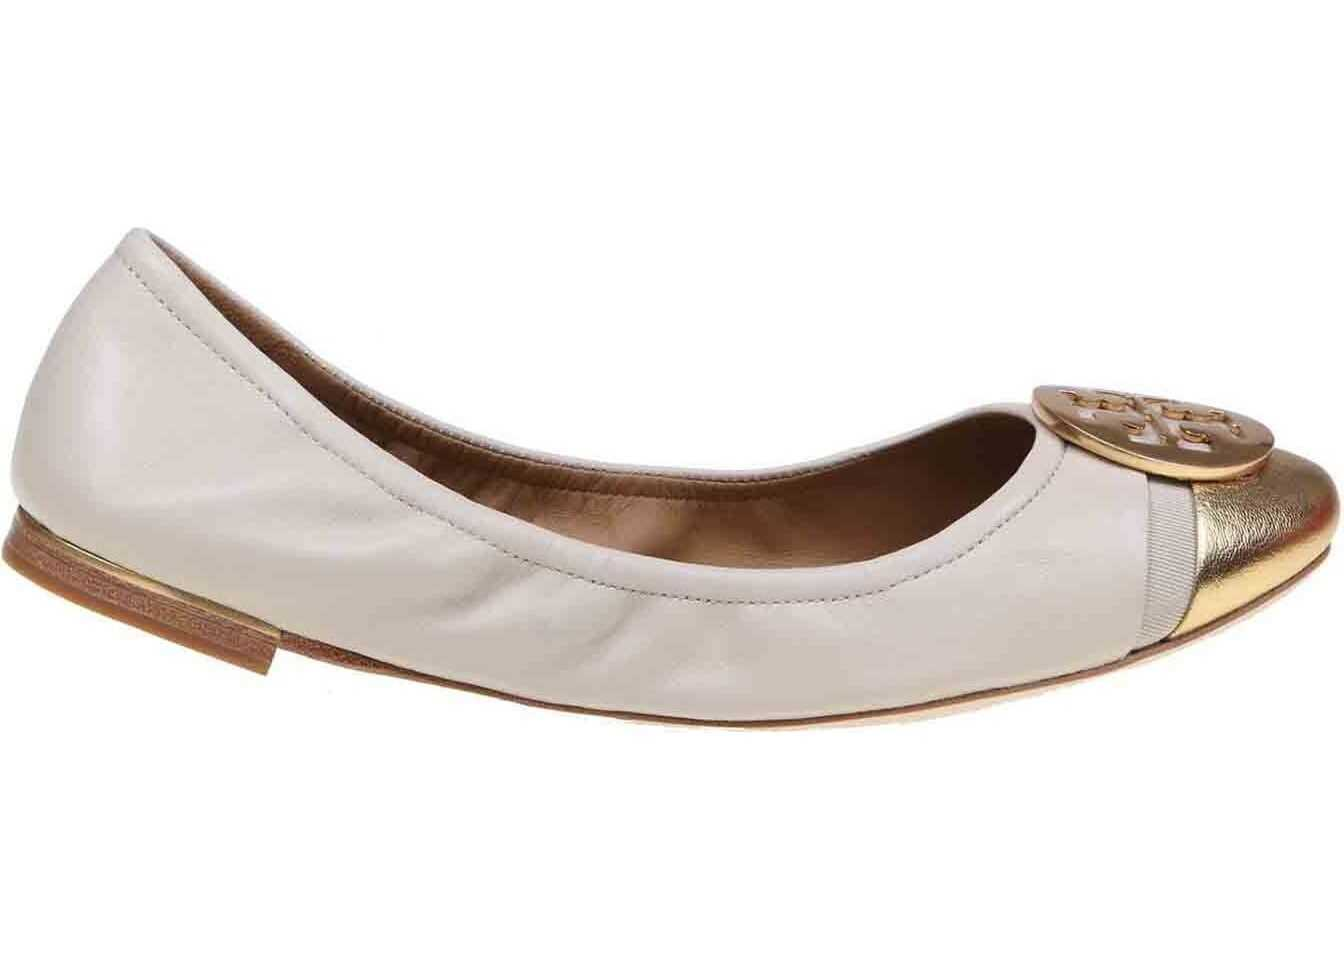 Minnie Cap-Toe Ballet Flats In Cream Color thumbnail